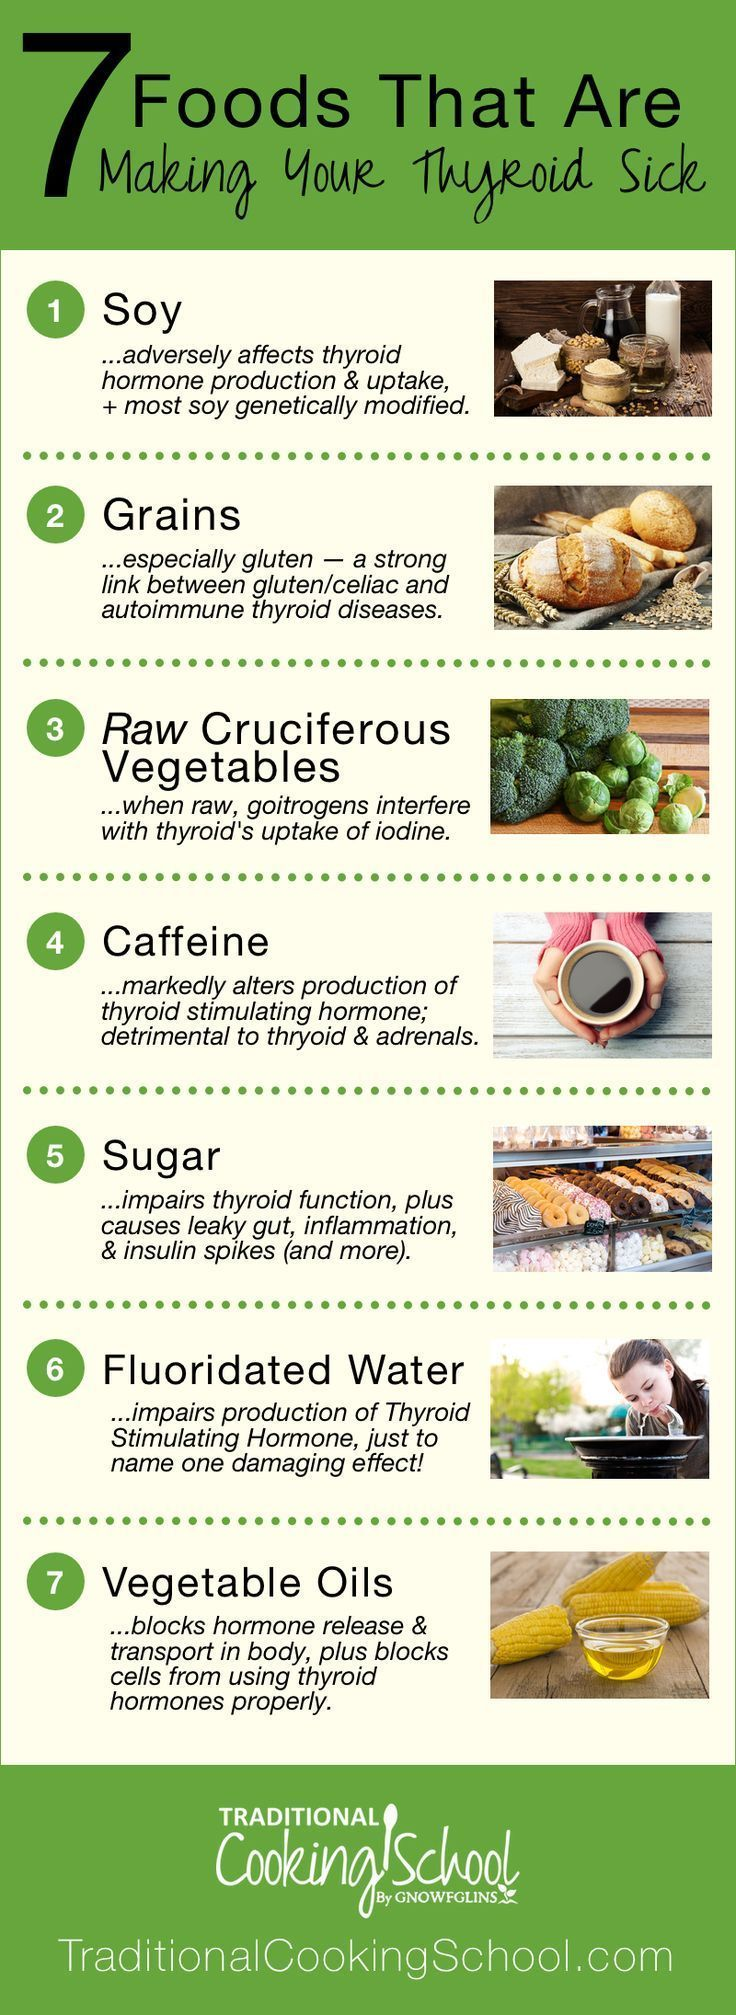 7 Foods That Are Making Your Thyroid Sick | Every cell in the body depends on thyroid hormones for regulation of their metabolism. So if your thyroid is sick, your entire body will suffer. Learn about the 7 foods that are detrimental to your thyroid and the science behind WHY they're causing thyroid diseases like Hashimoto's and hypothyroidism. | TraditionalCookingSchool.com #Symptomsandcausesofthyroidproblems